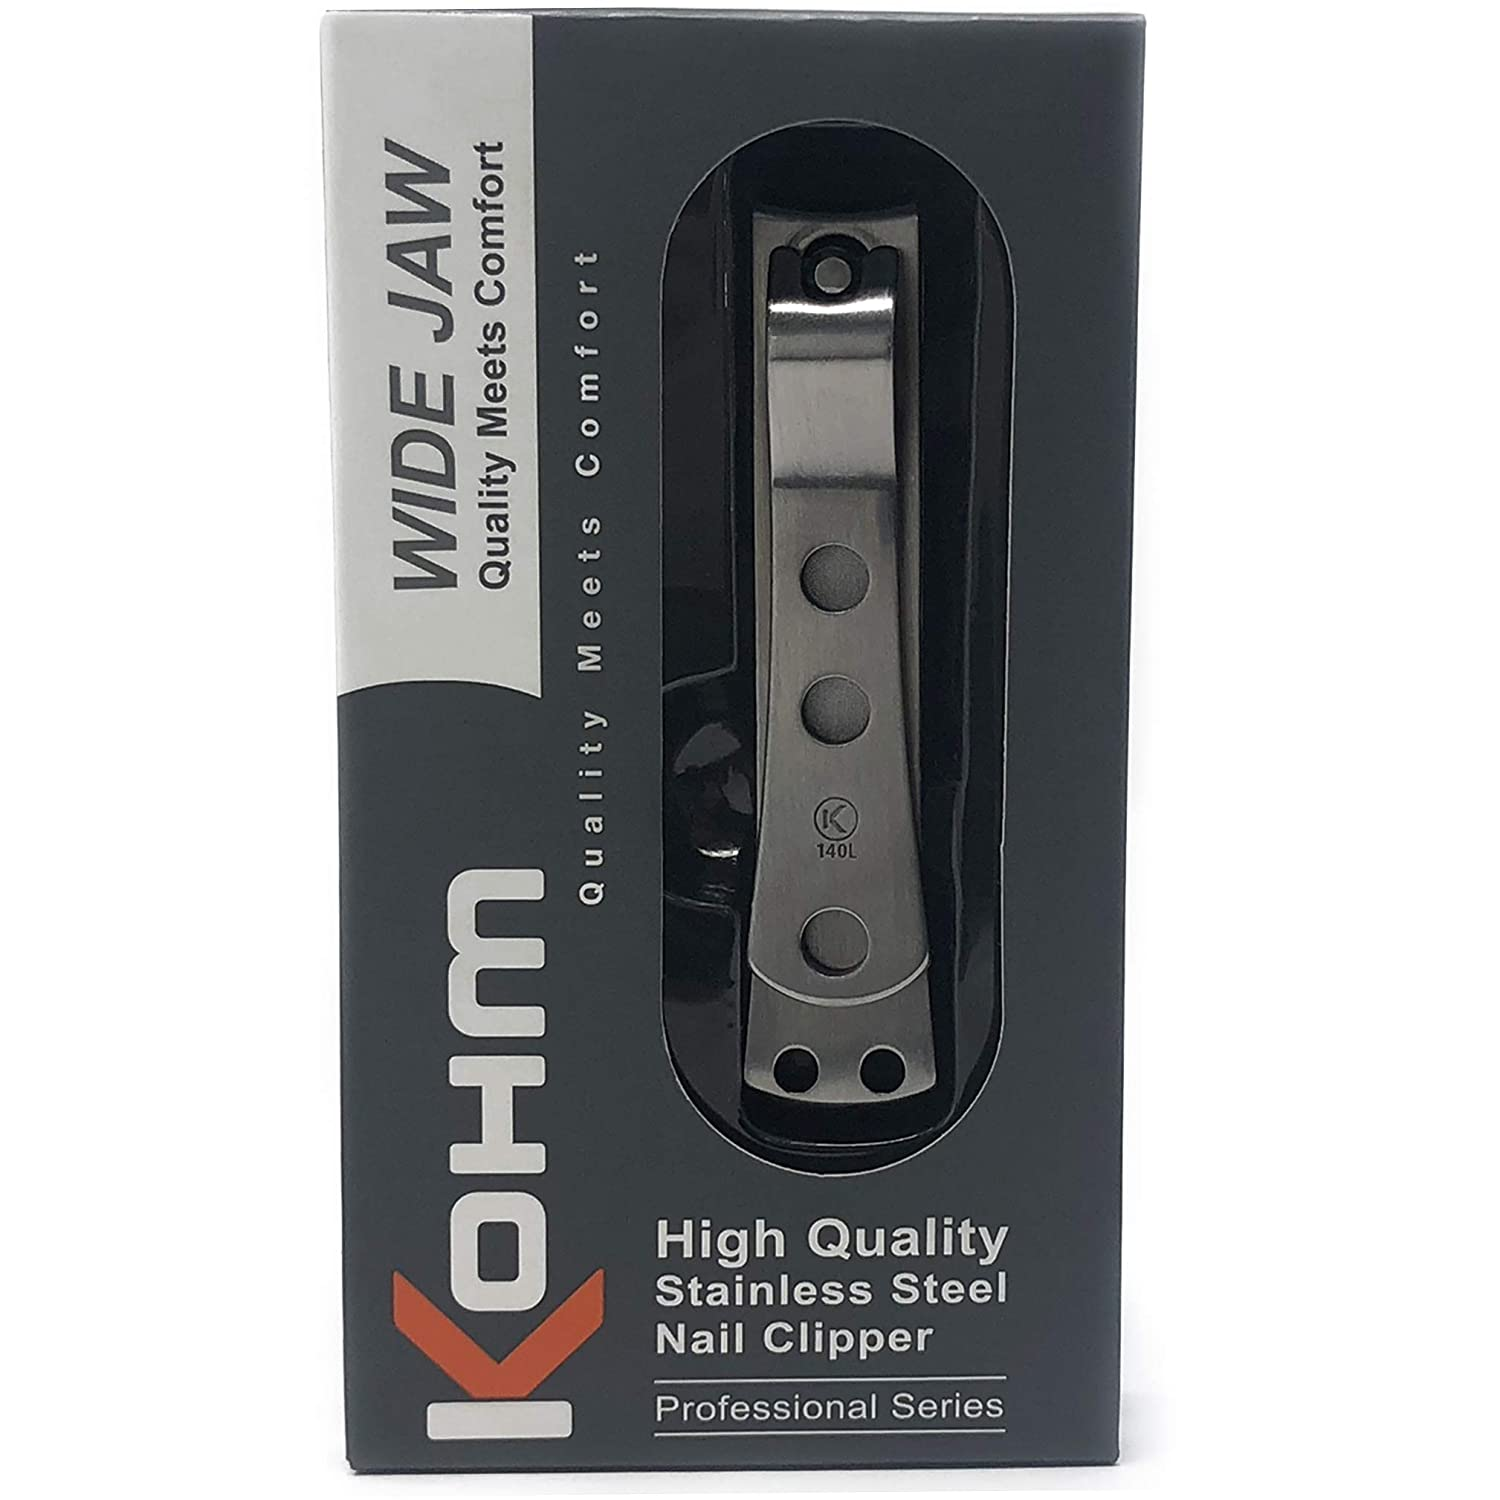 Kohm CP-140L Toenail Clipper for Thick Nails - 4mm Wide Jaw Opening, Curved Blades, Stainless Steel Whole Health Supply